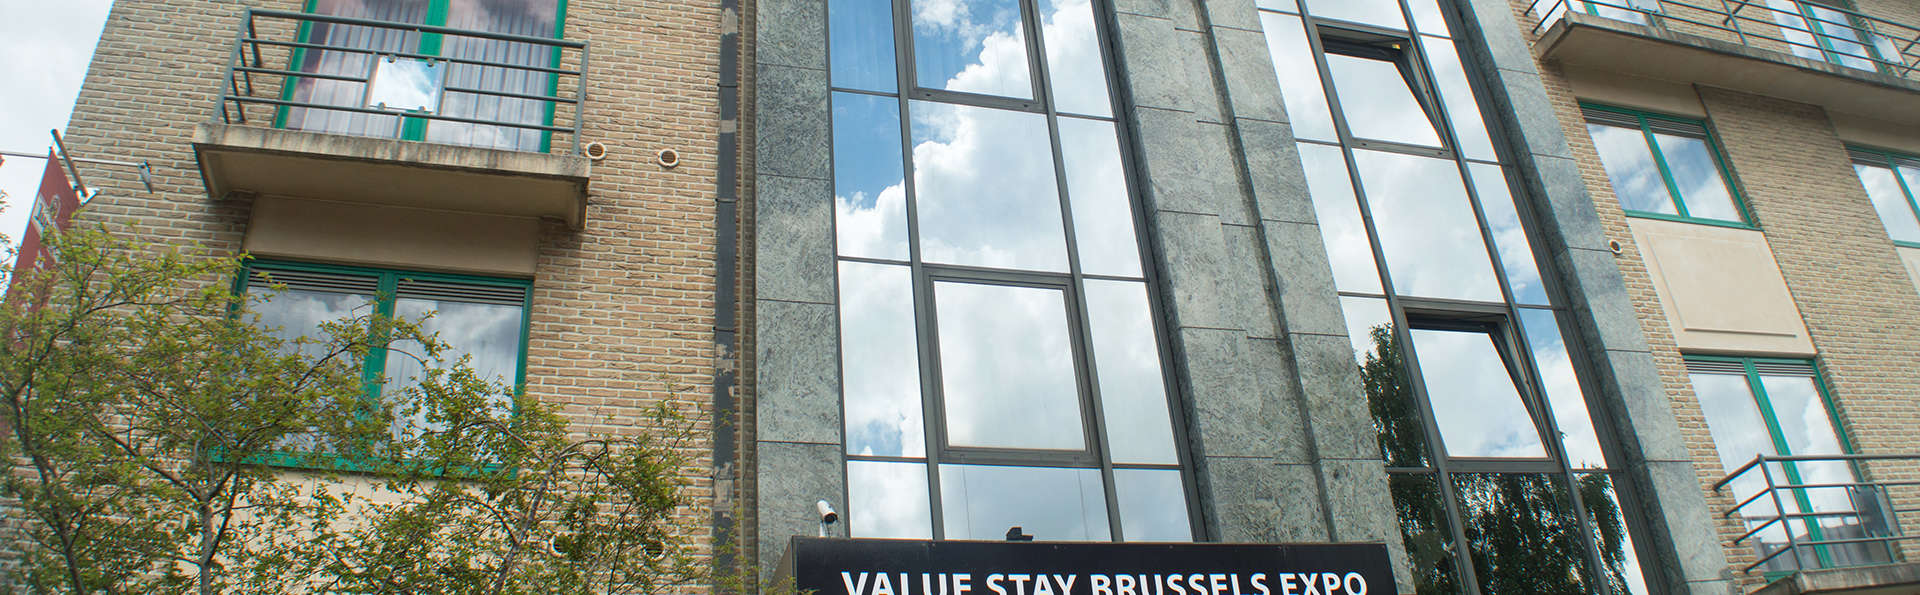 Value Stay Brussels Expo - edit_front.jpg